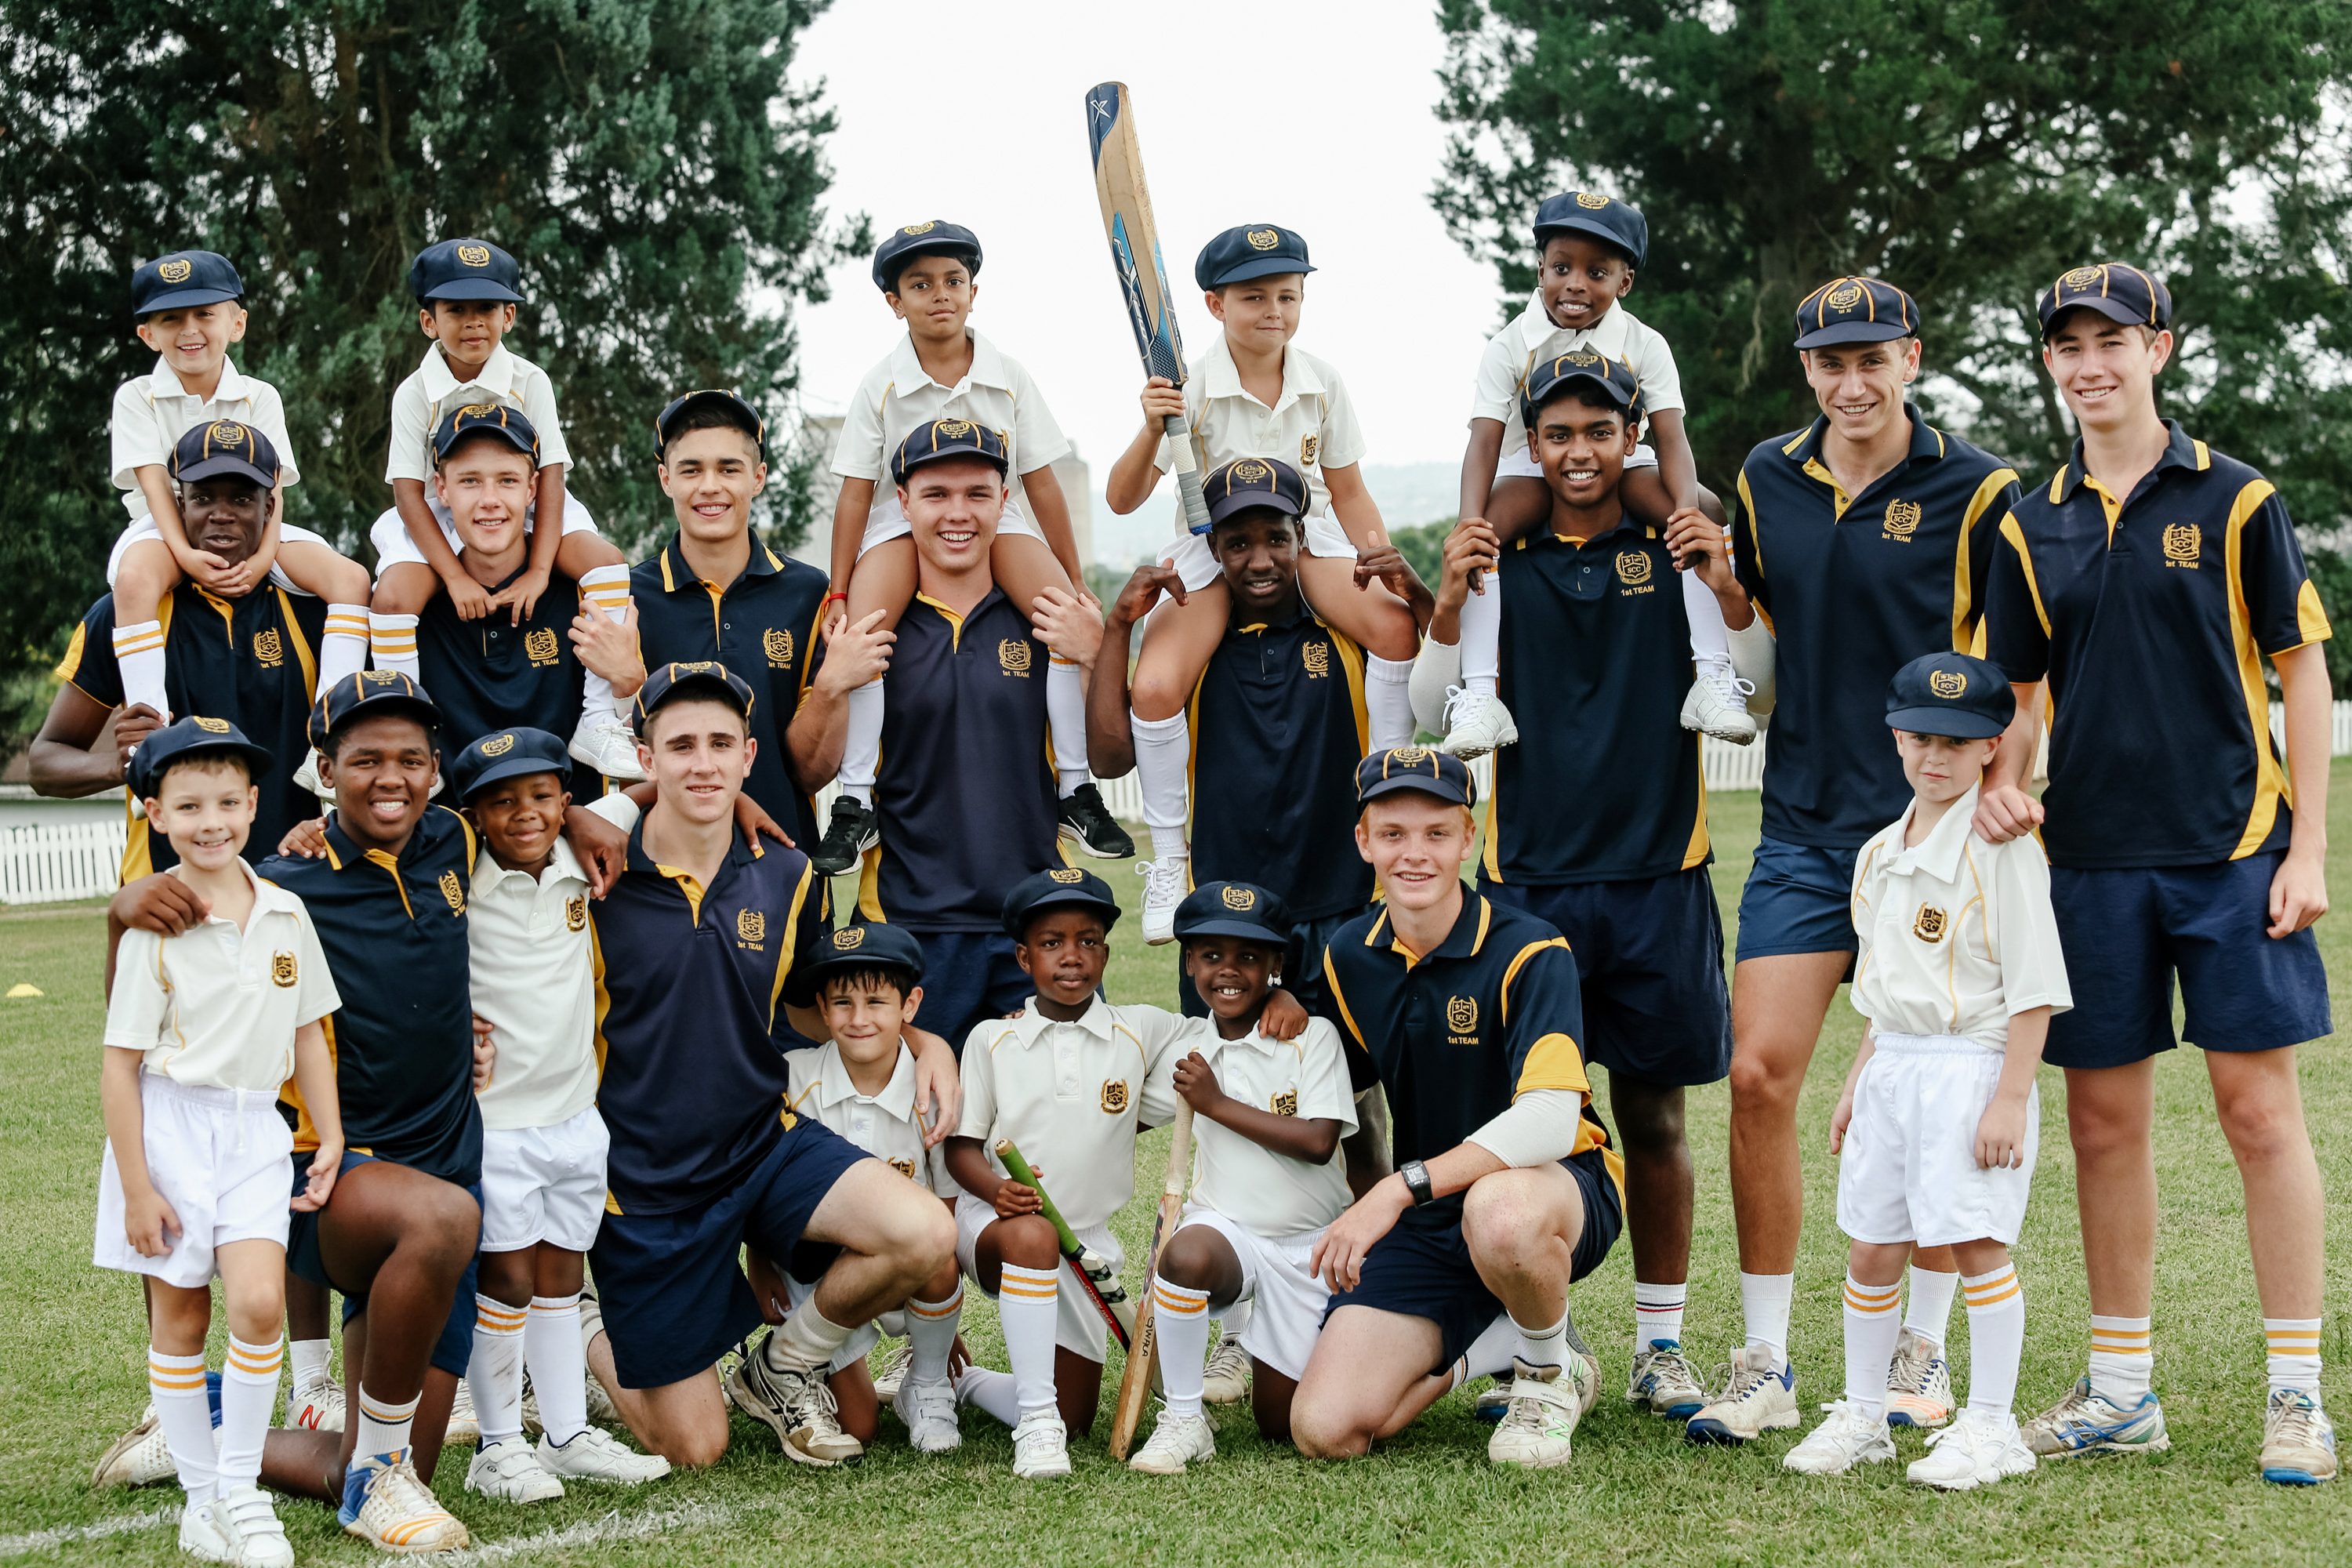 senior and junior cricket teams together